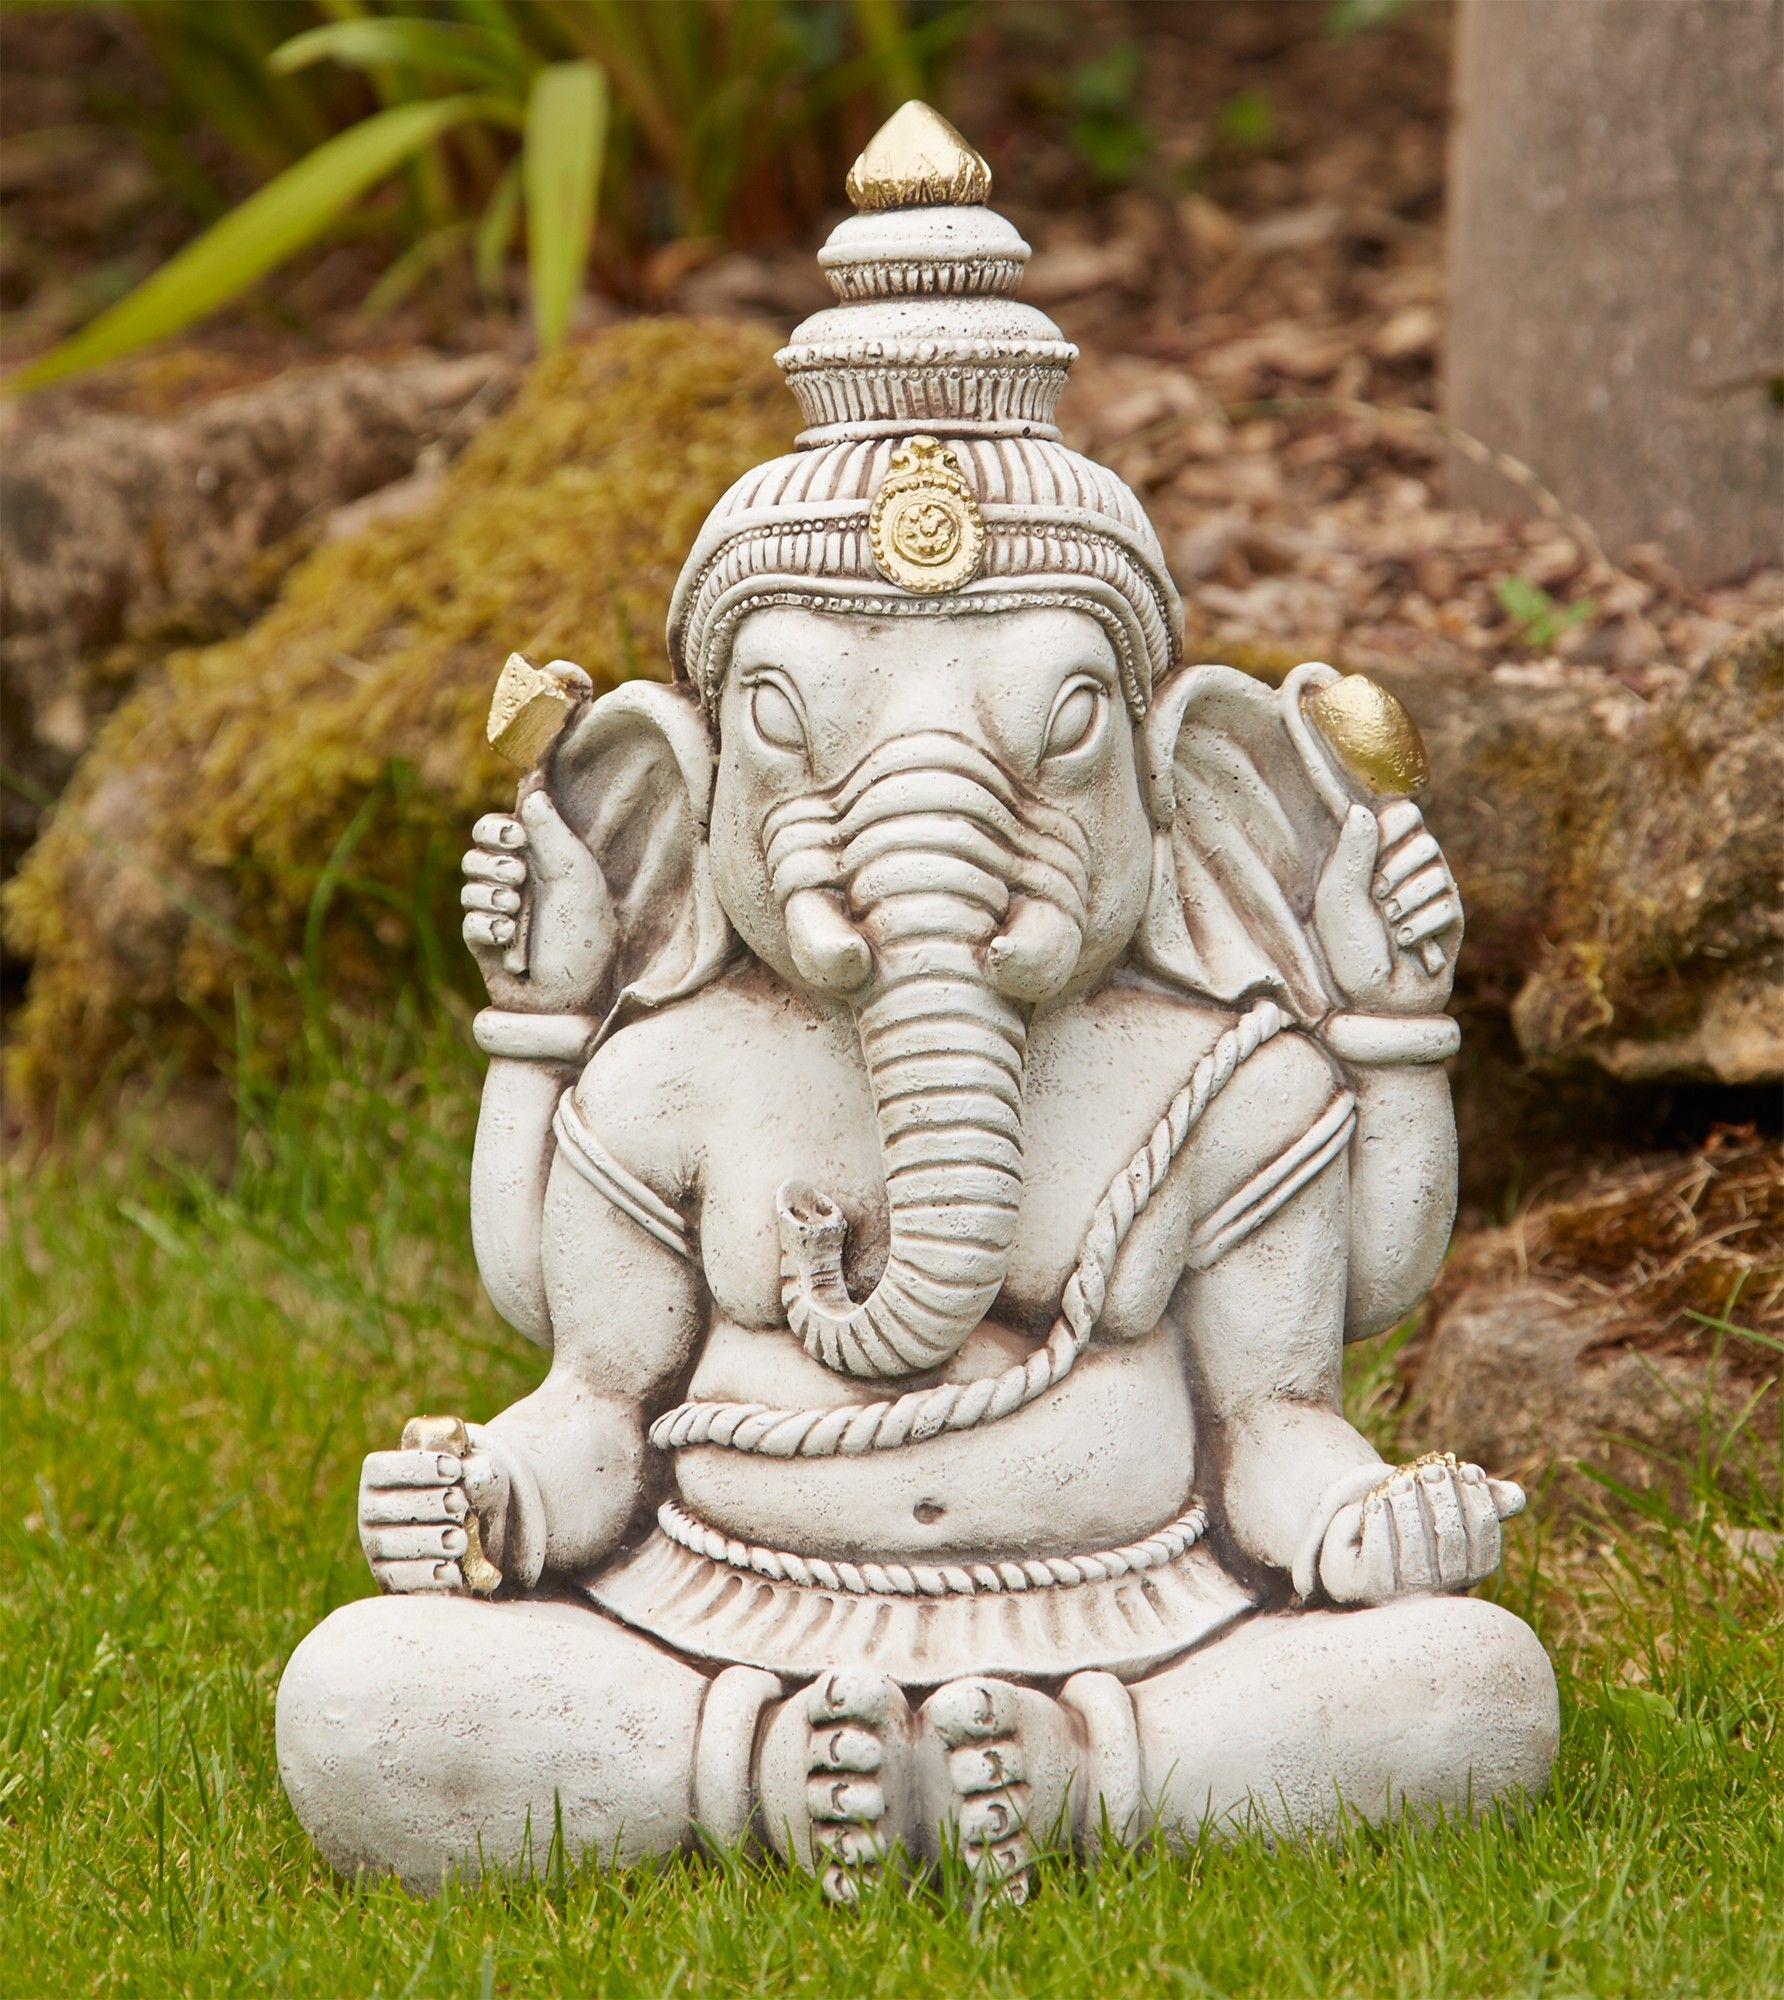 Ganesh Stone Buddha Statue Large Garden Ornament. Buy Now At Http://www